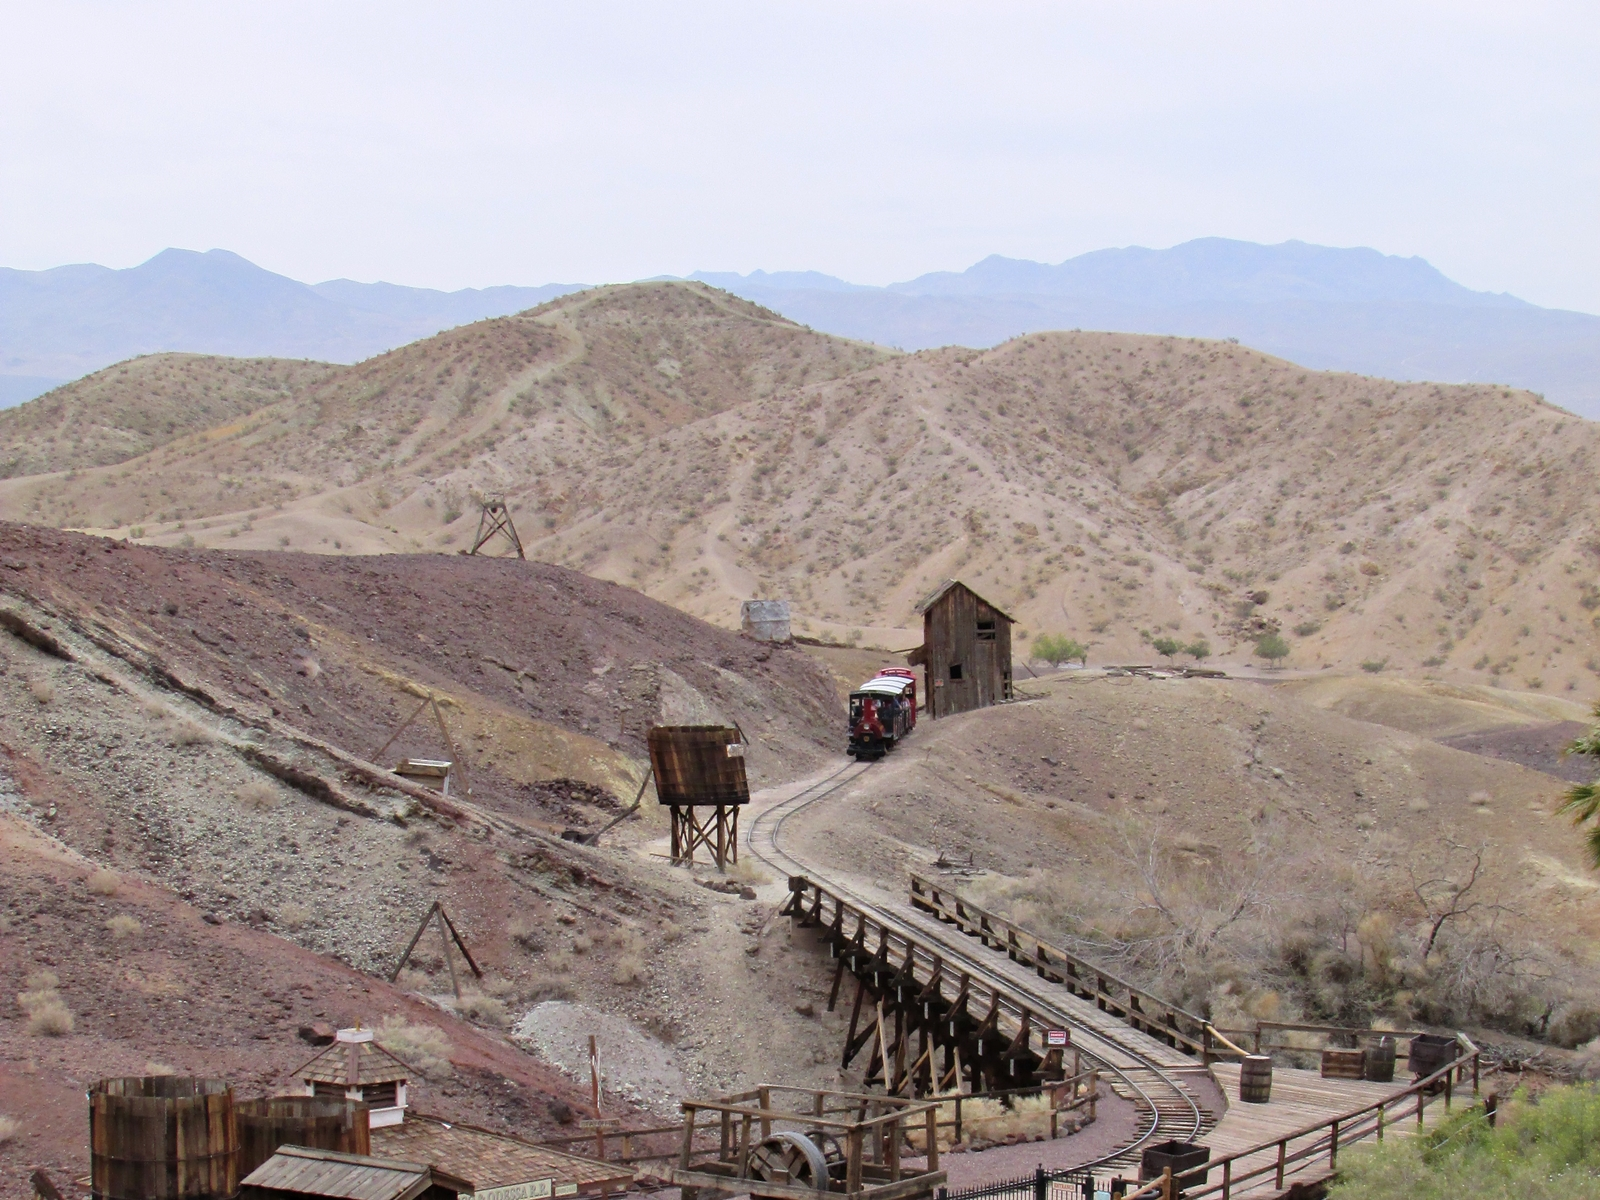 Calico Ghost town - usa rundreise - geisterstadt in der Mojave Wüste - Eingang - Zug - Fashionladyloves by Tamara Wagner Travelblog